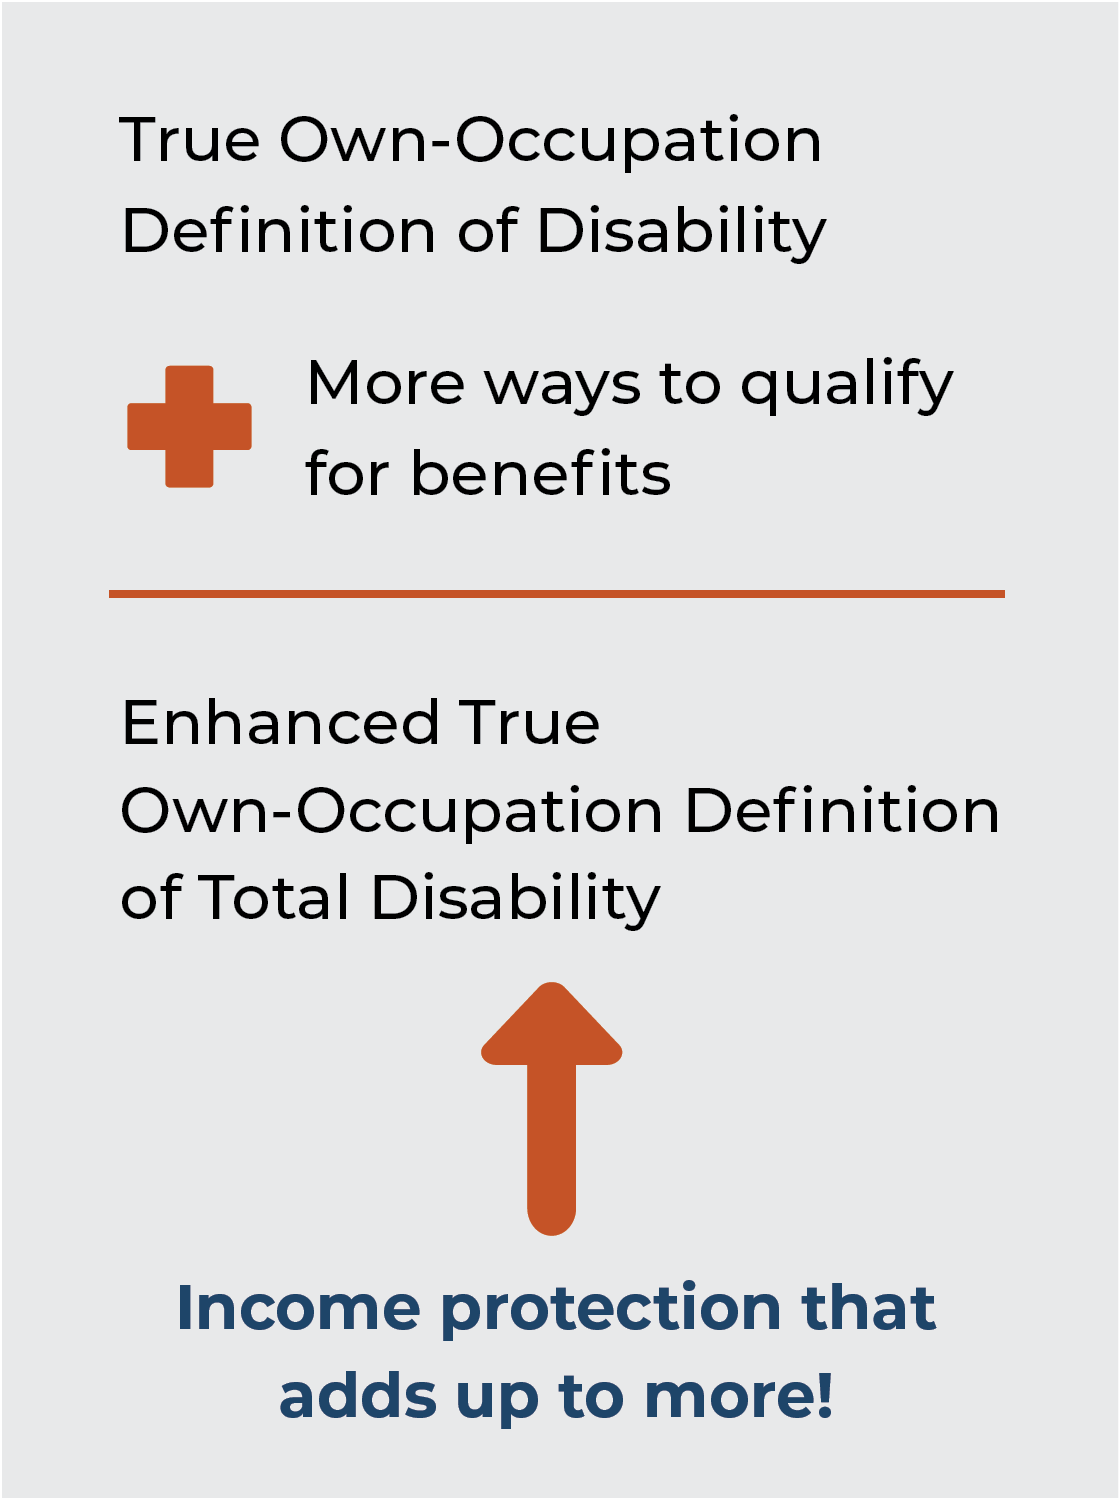 True Own-Occupation Definition of Disability